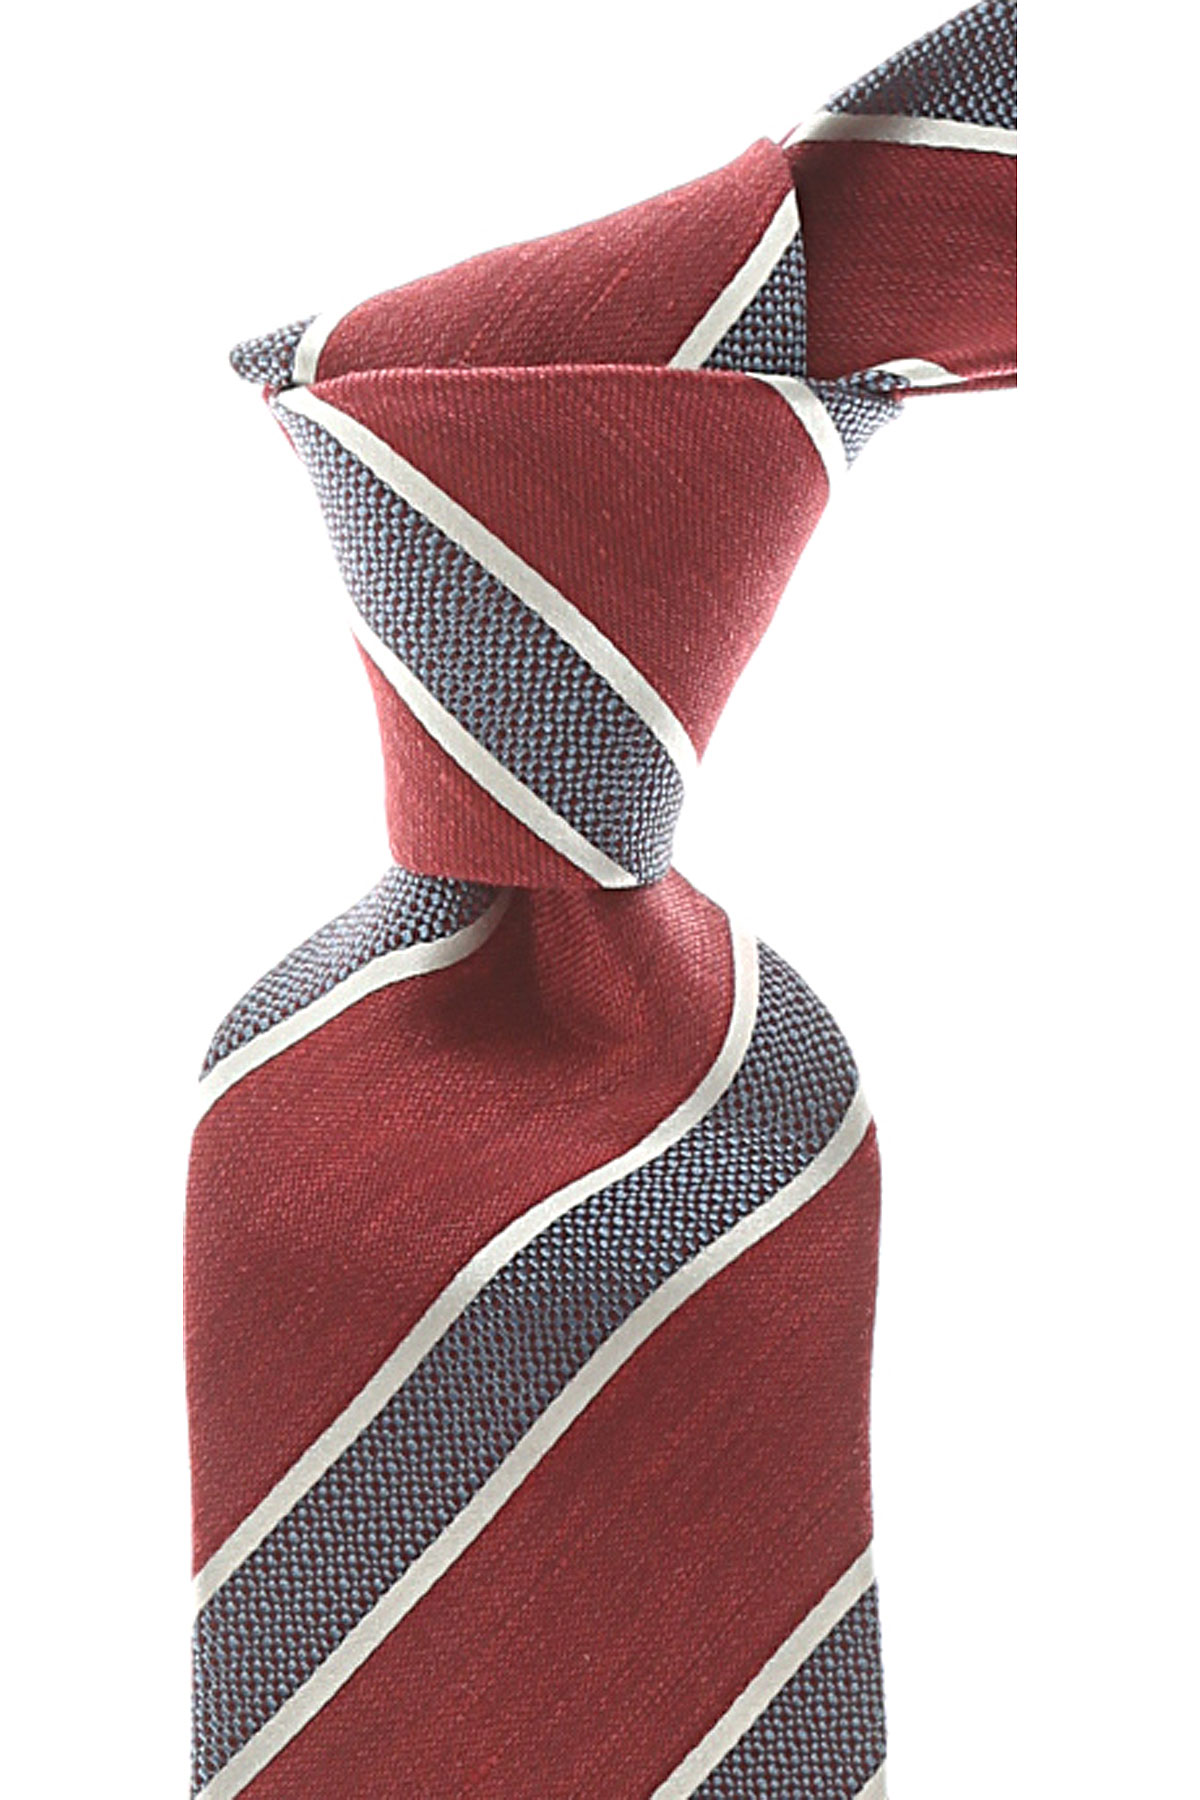 Ermenegildo_Zegna_Ties_On_Sale_Dark_Cardinal_Red_Melange_Silk_2019